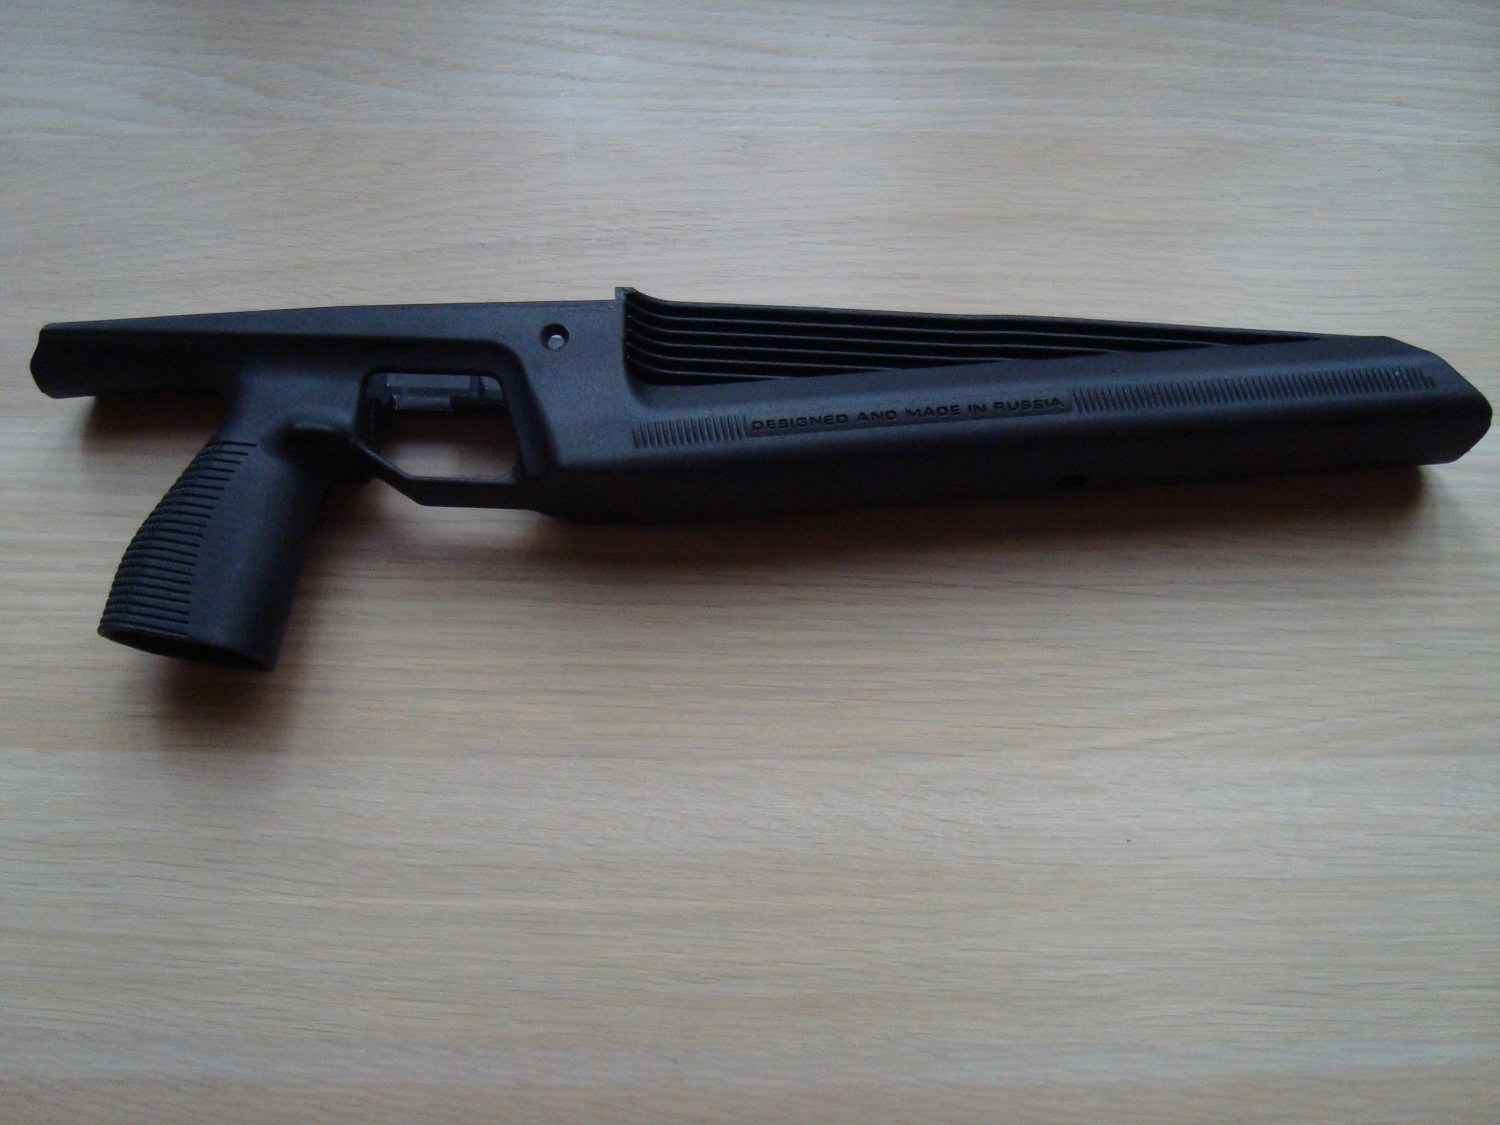 izh-61 mp-61 handle butt stock fore-end tuning Baikal new design with more even shape for upgrade.